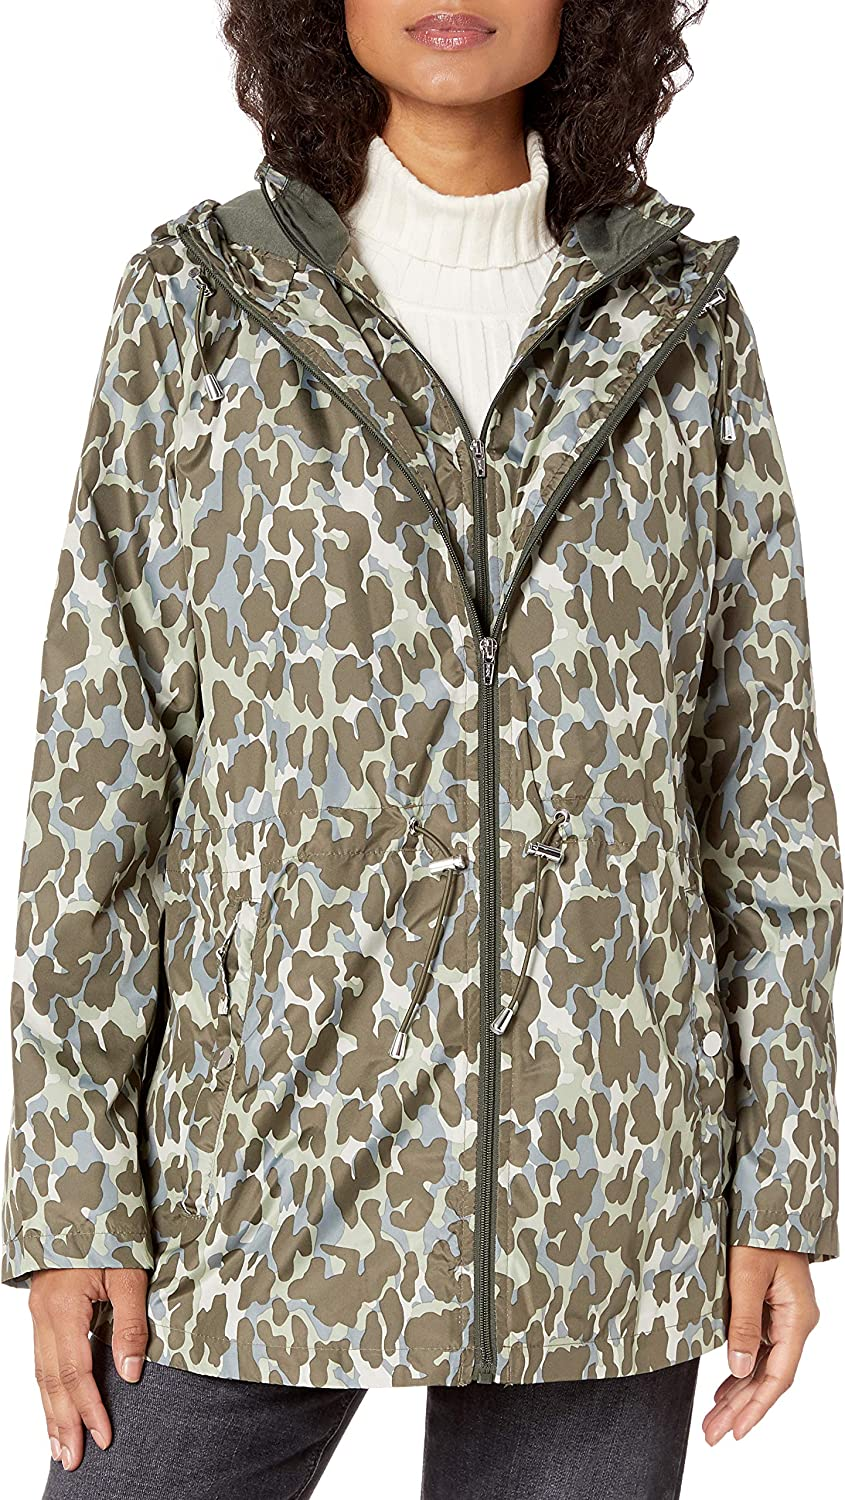 INTL d.e.t.a.i.l.s Women's Midweight Pack-it-in-a-Pouch Vestee Jacket